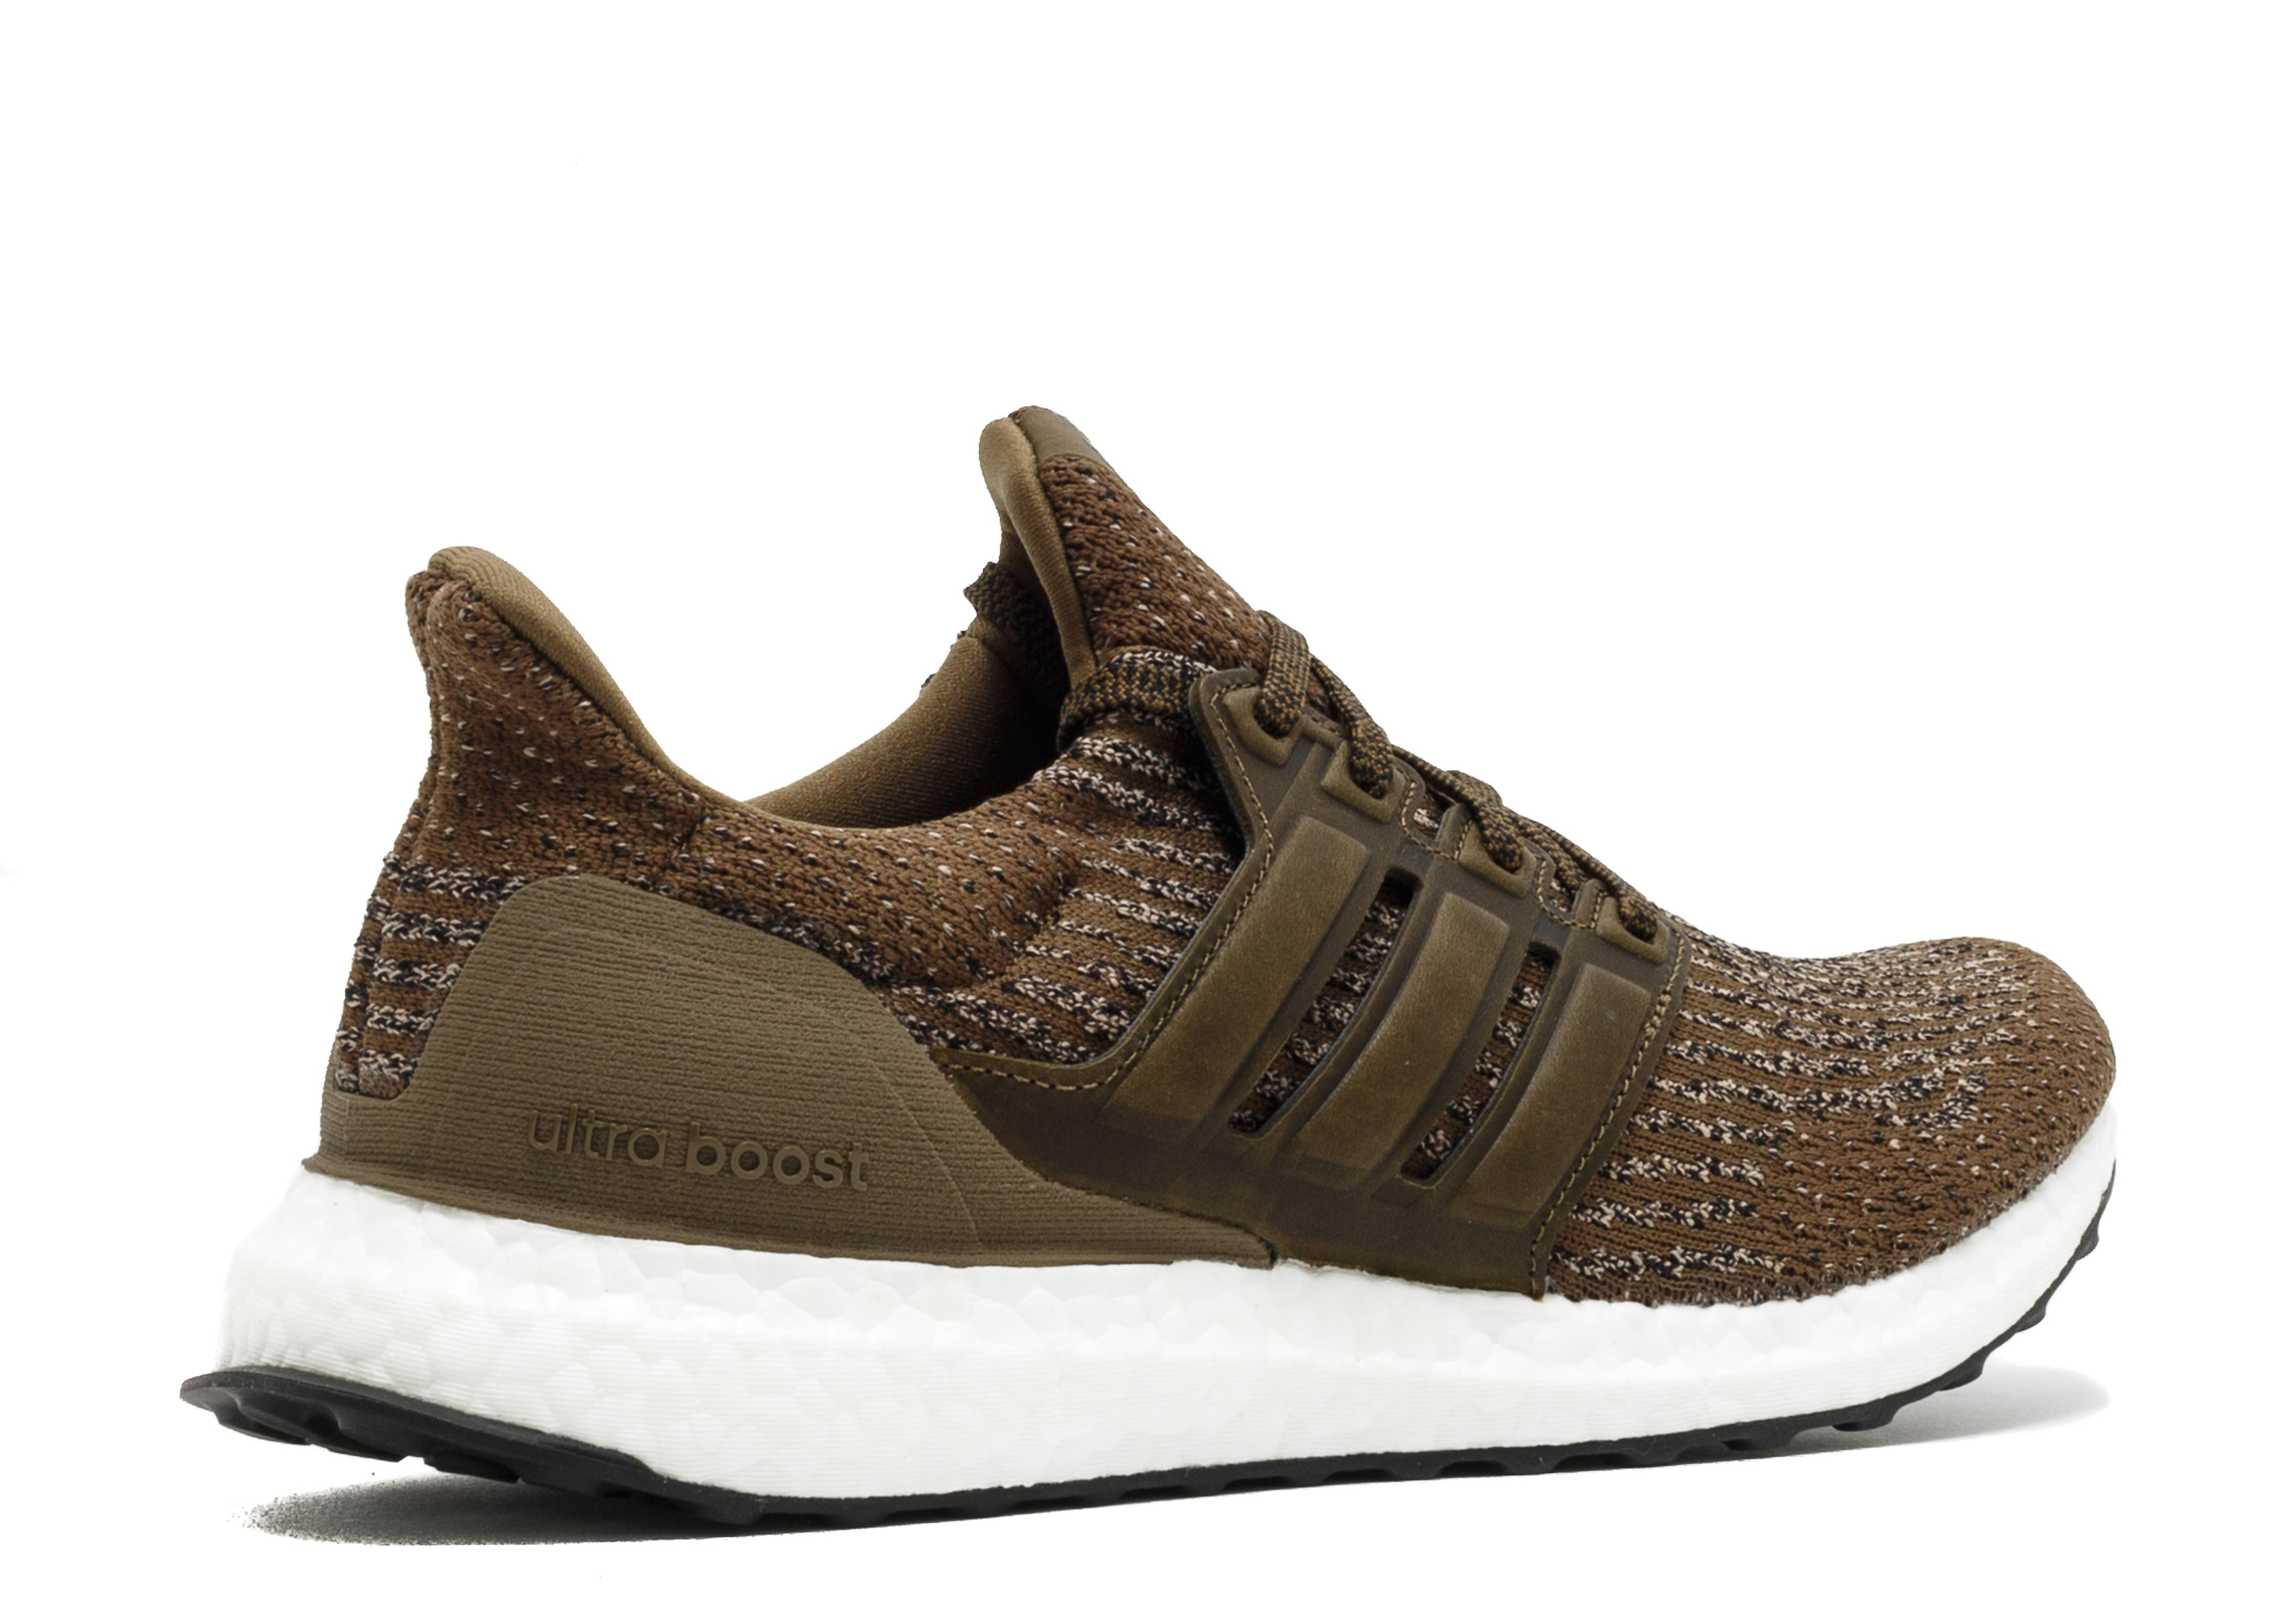 19ba64a93d5 Ultra Boost - Adidas - s82018 - trace olive trace khaki